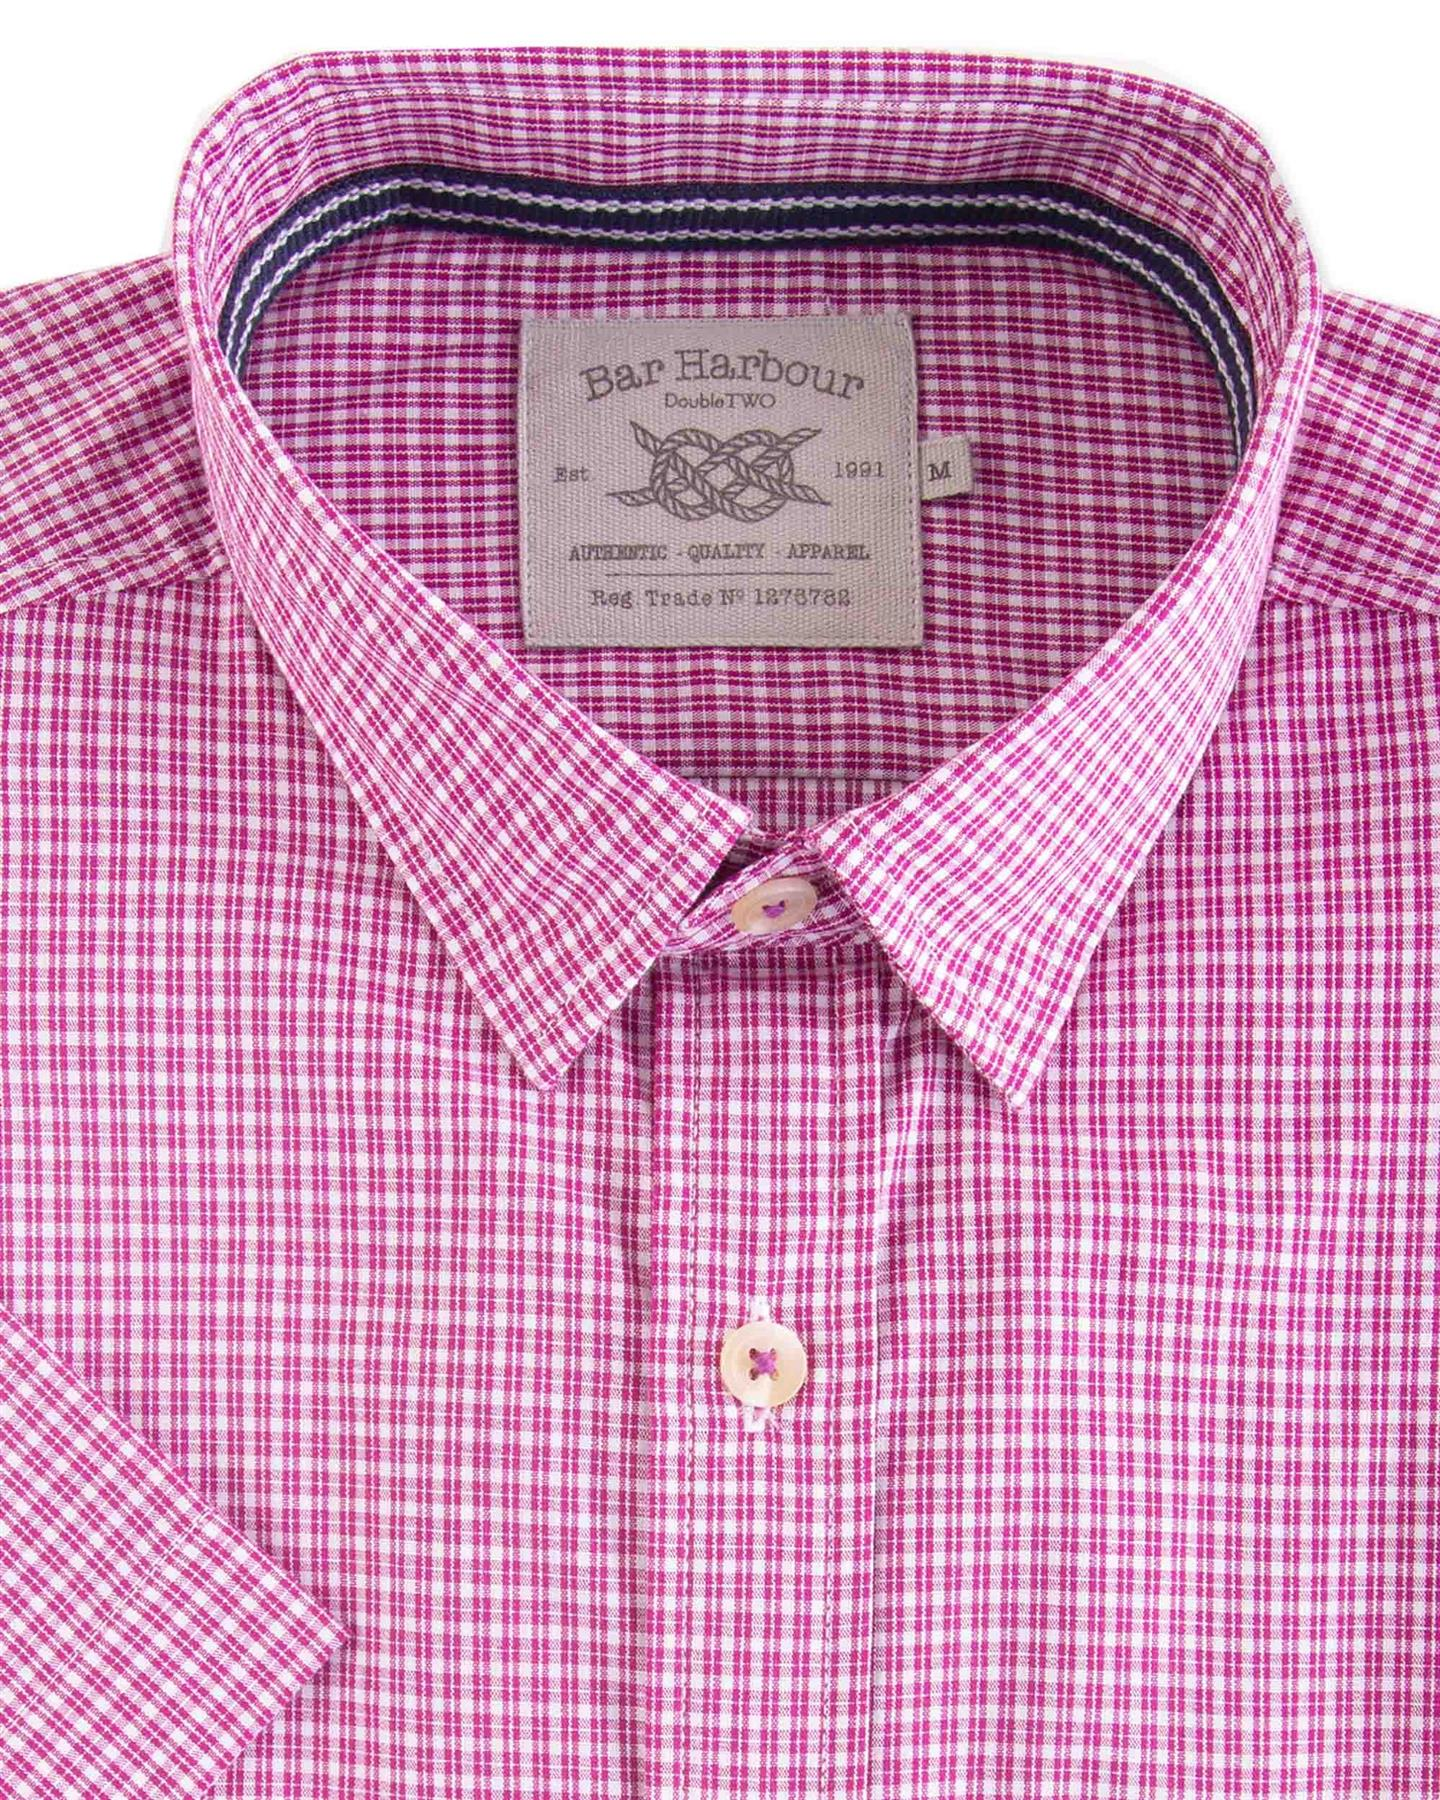 Bar Harbour Pure Cotton SS Smart Casual Shirts ,Size XXL to 5XL SS19